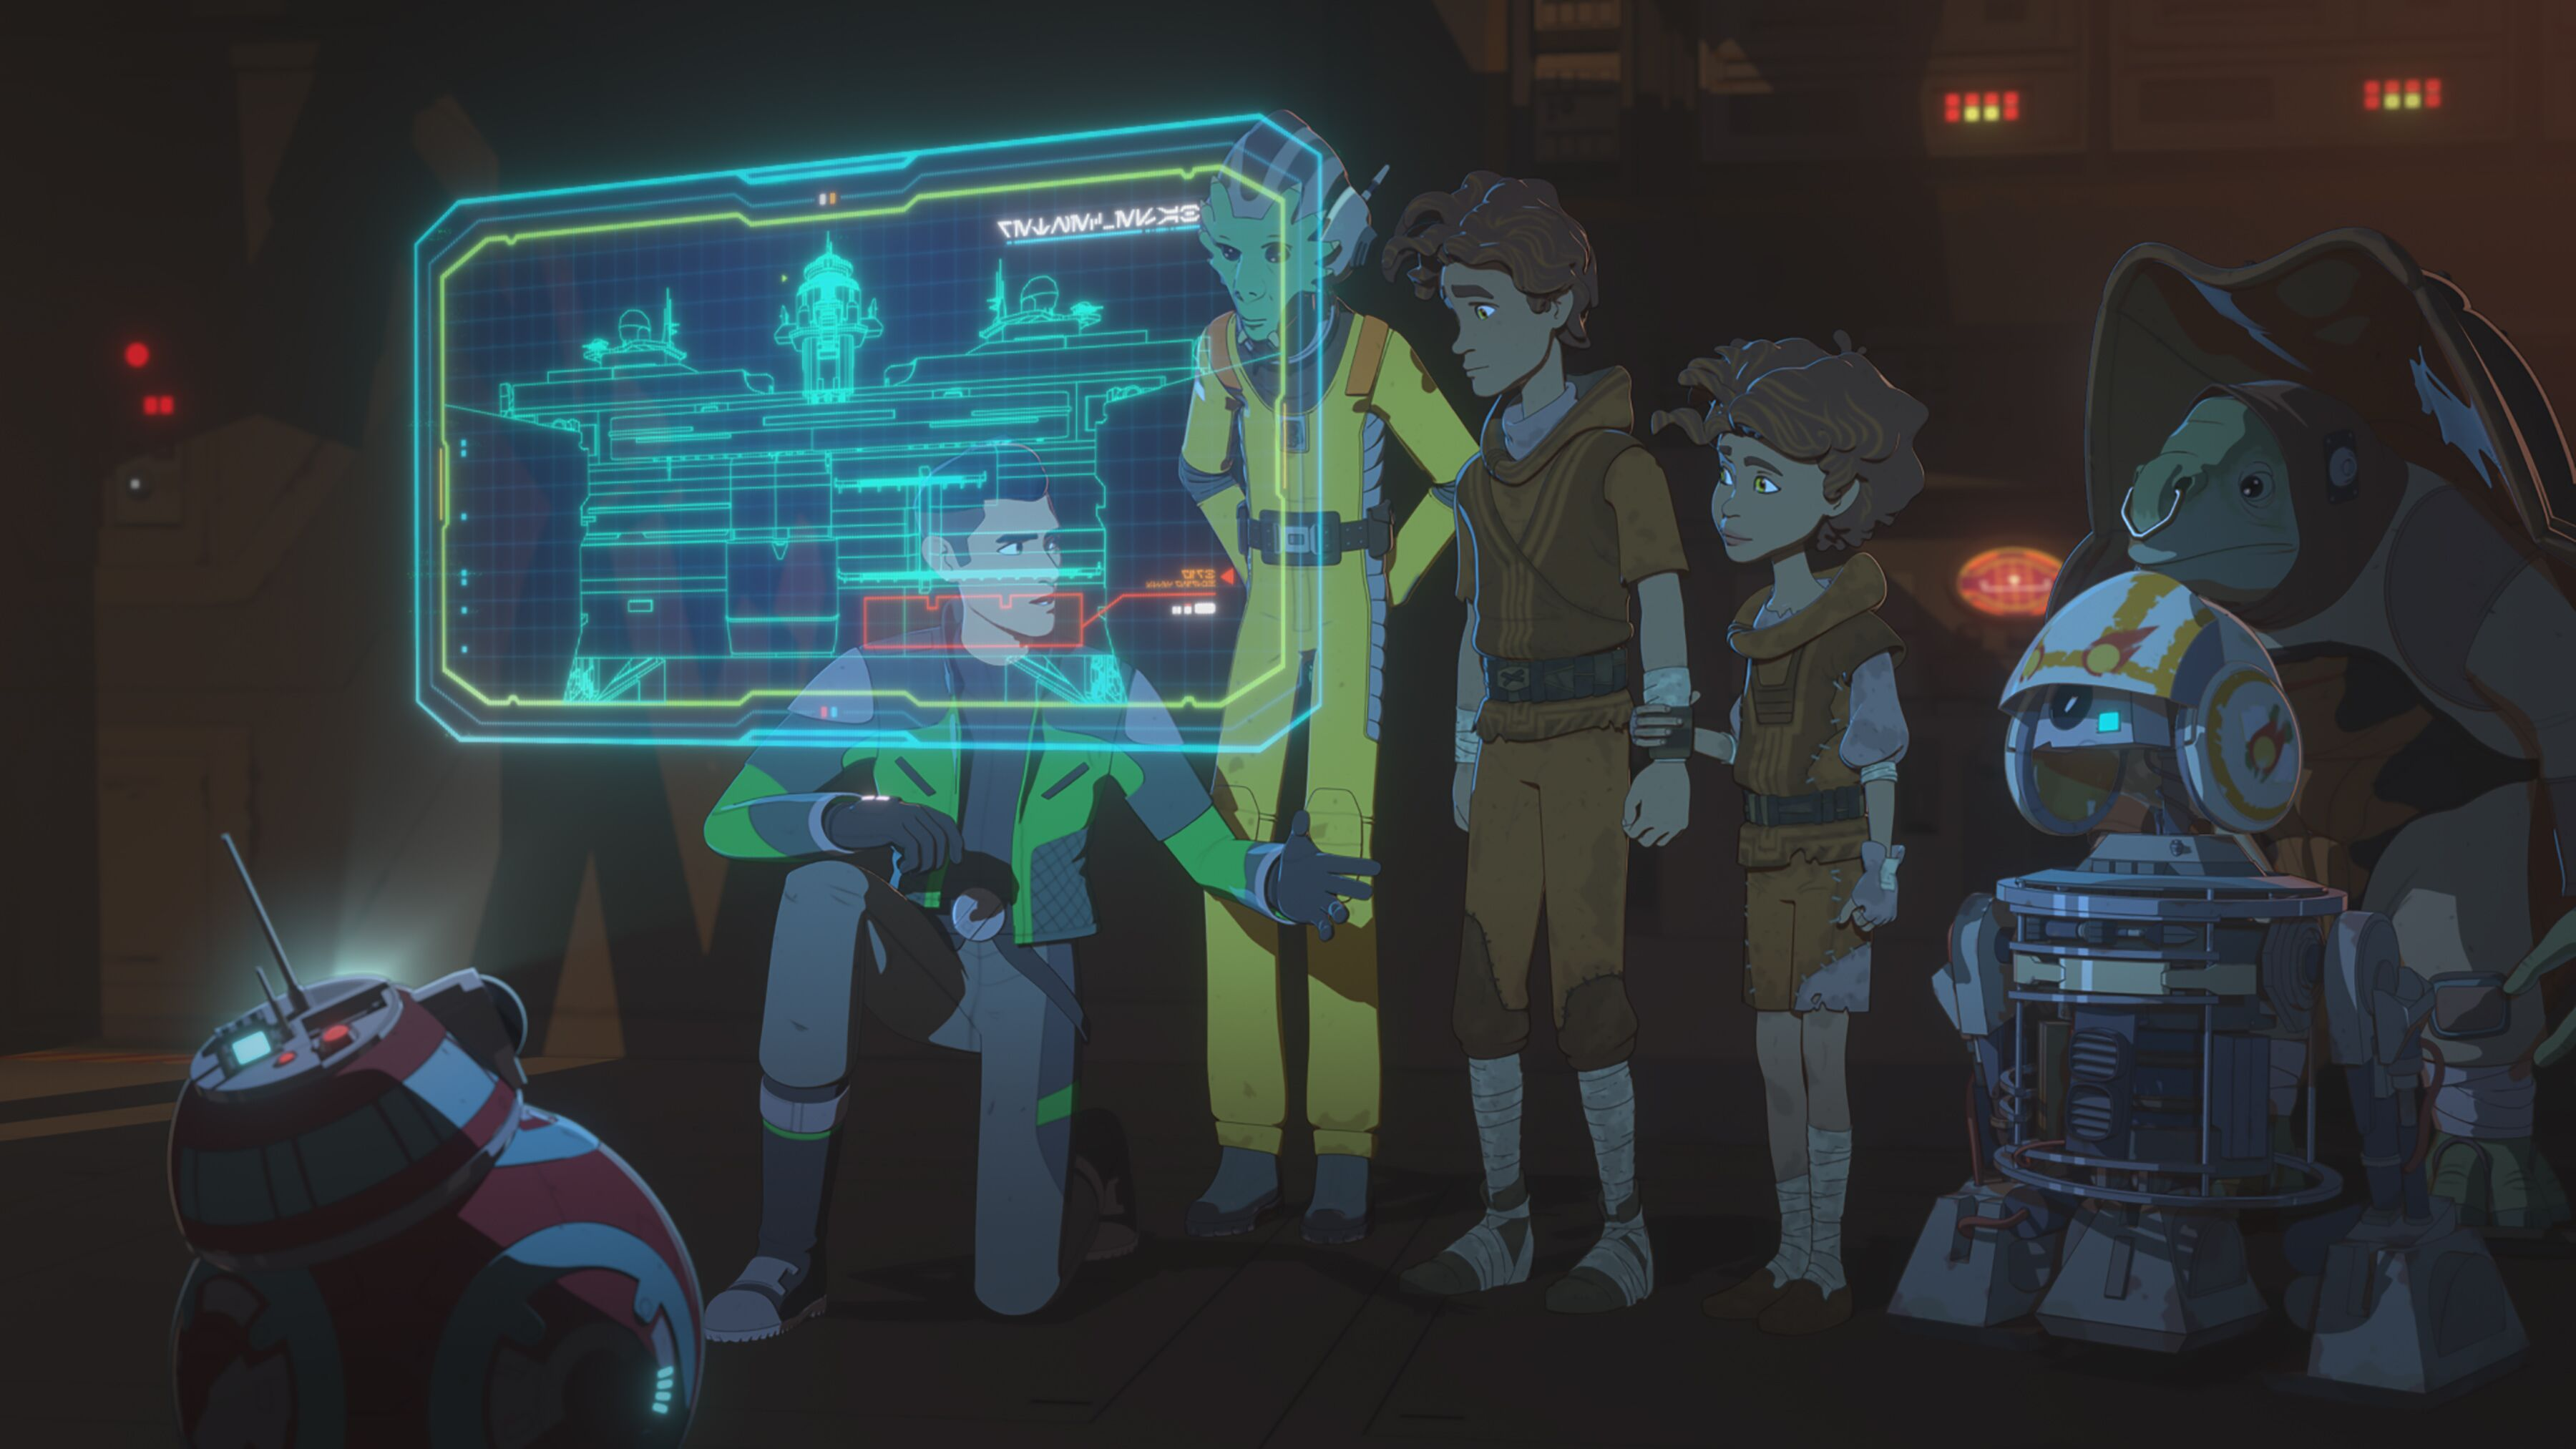 Star Wars Resistance: What can we expect from Season 2?